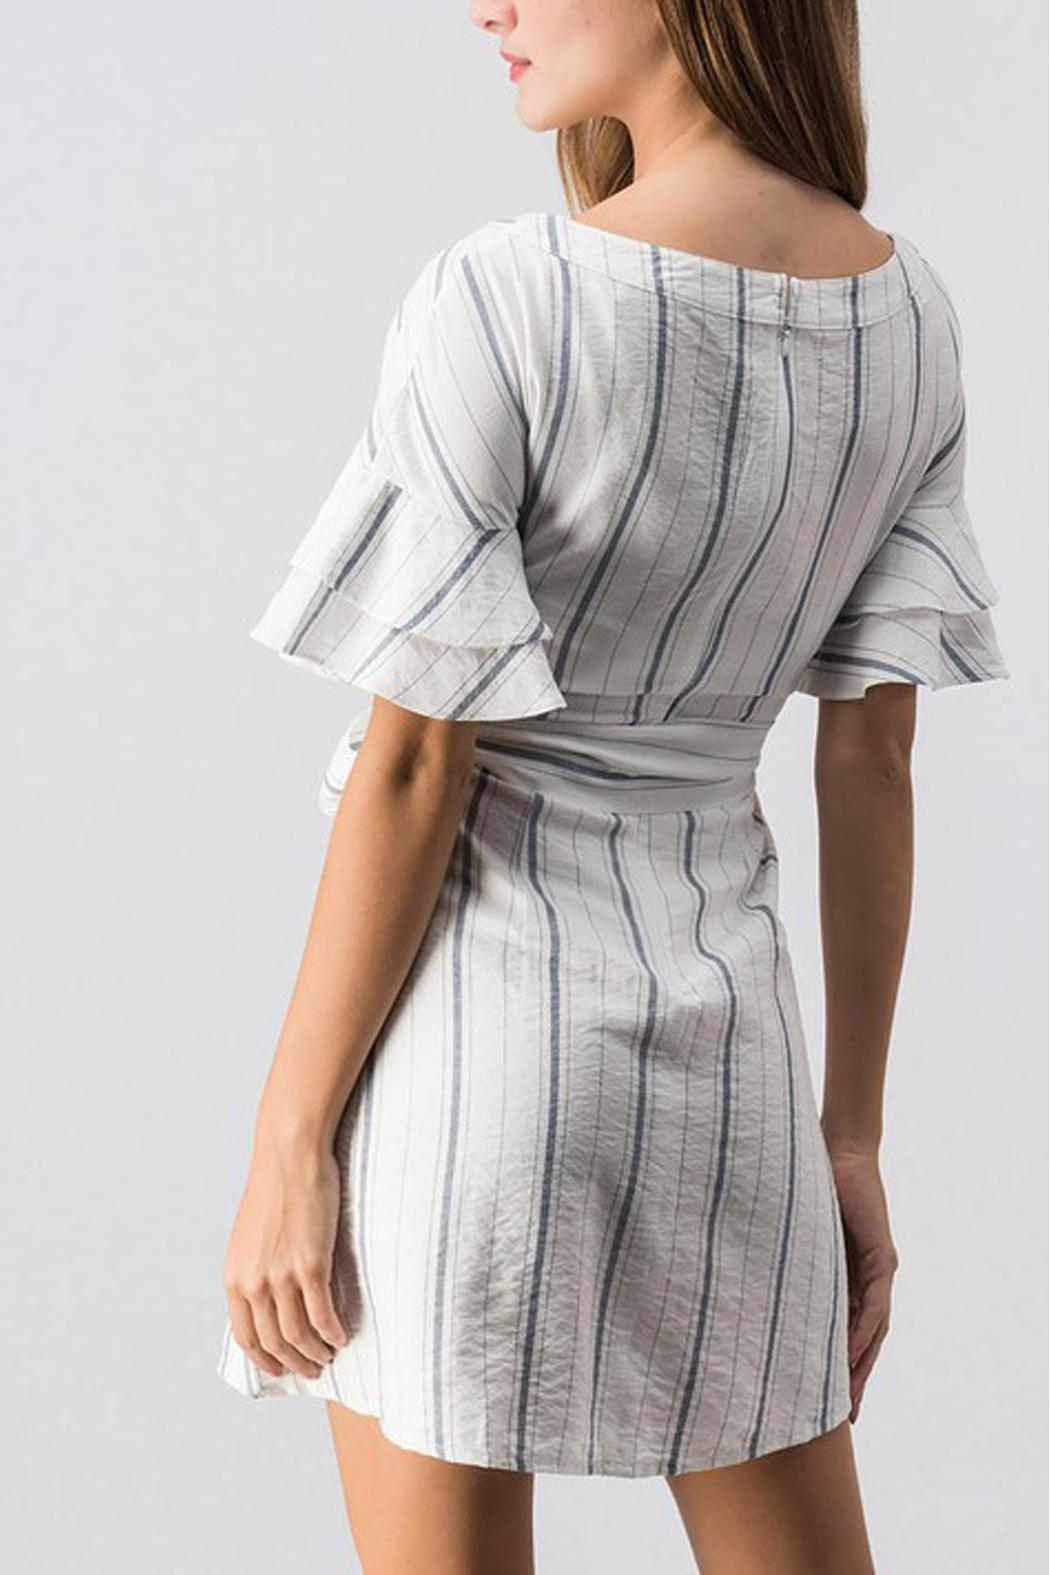 essue White Striped Dress - Front Full Image